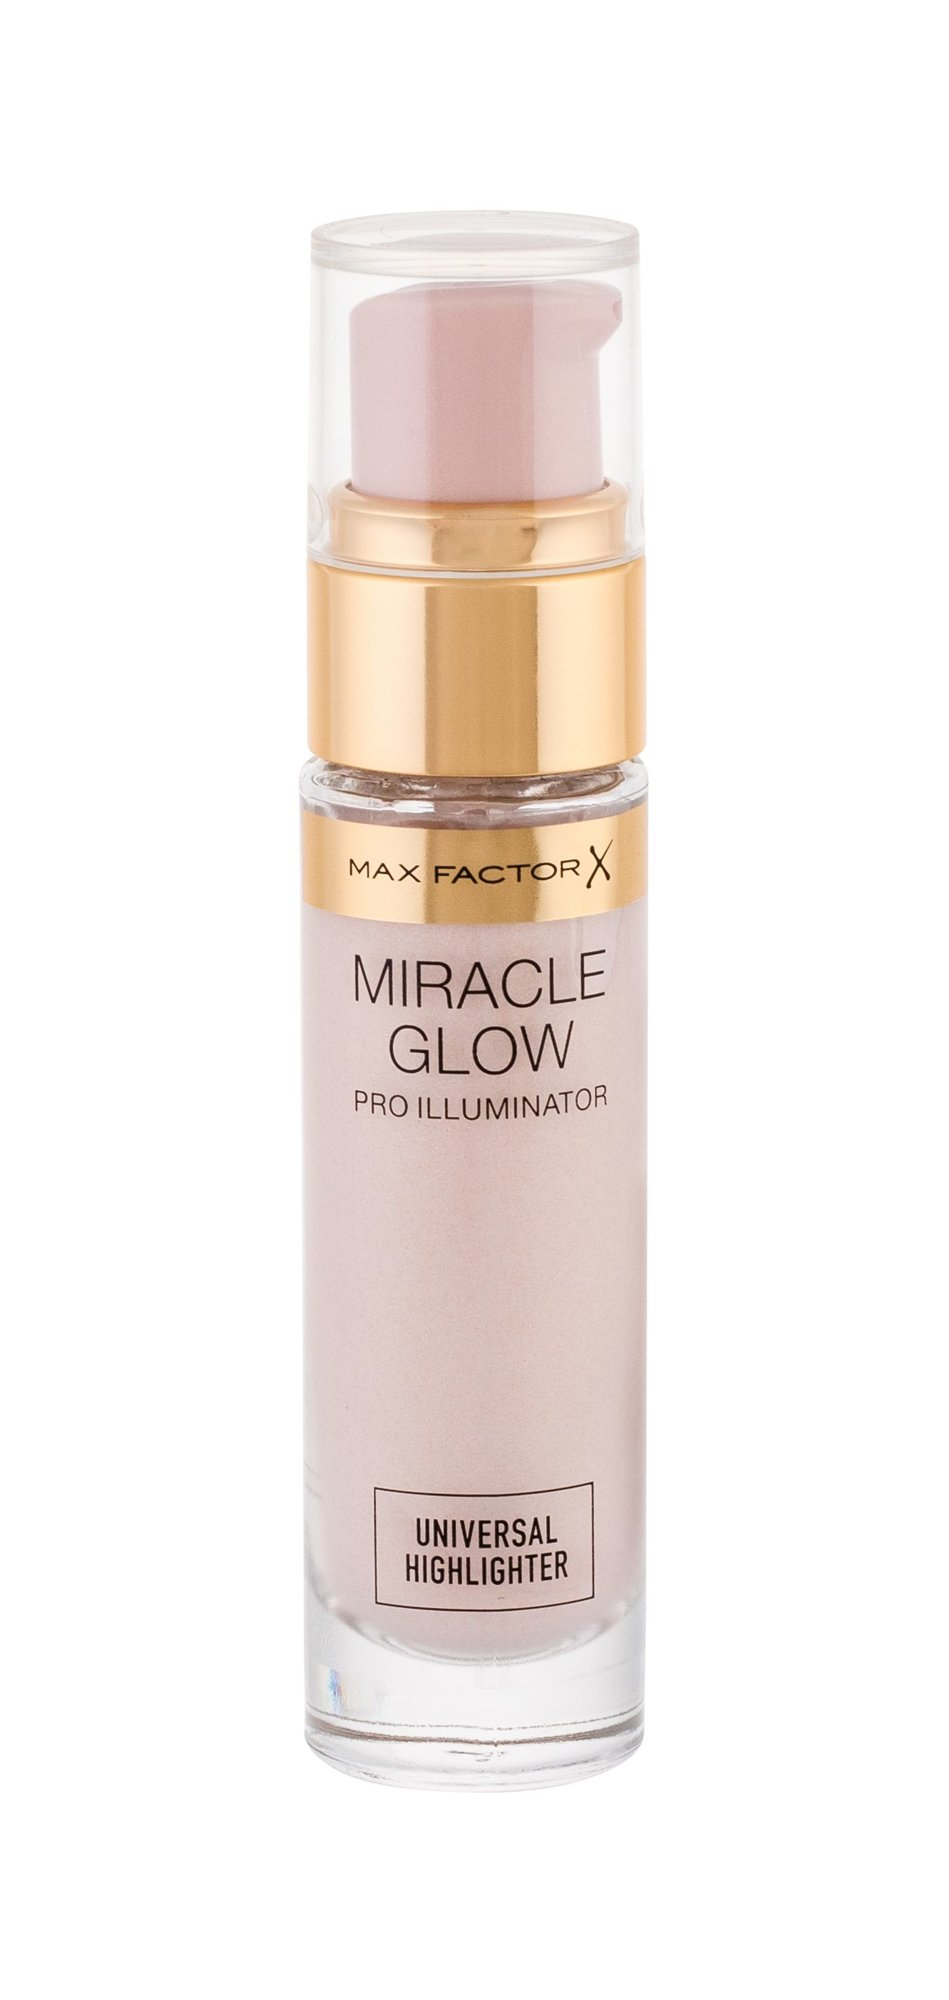 Max Factor Miracle Glow Brightener 15ml Universal